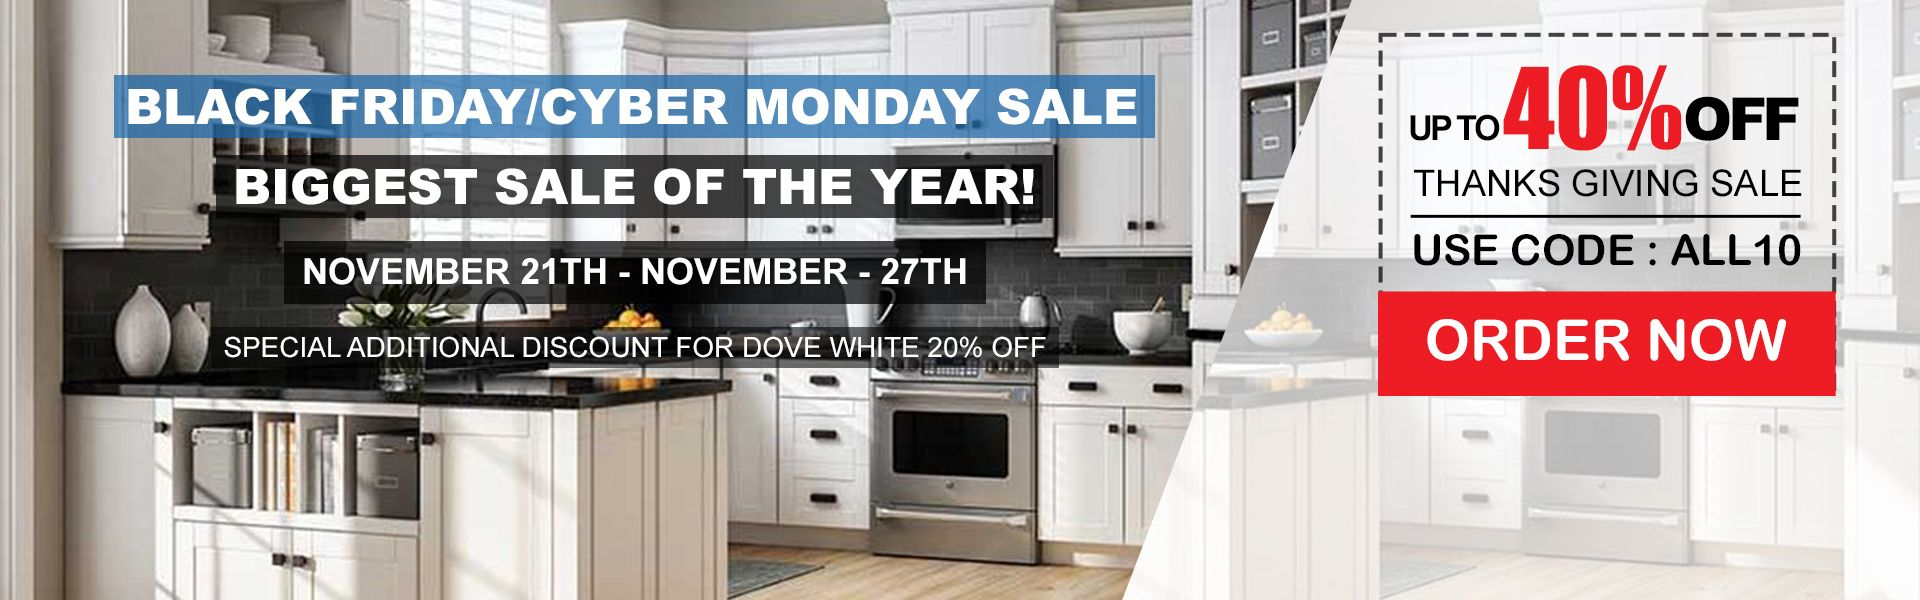 Black Friday Cyber Monday Biggest Sale Of The Years Online Kitchen Cabinets Rta Kitchen Cabinets Kitchen Cabinets For Sale